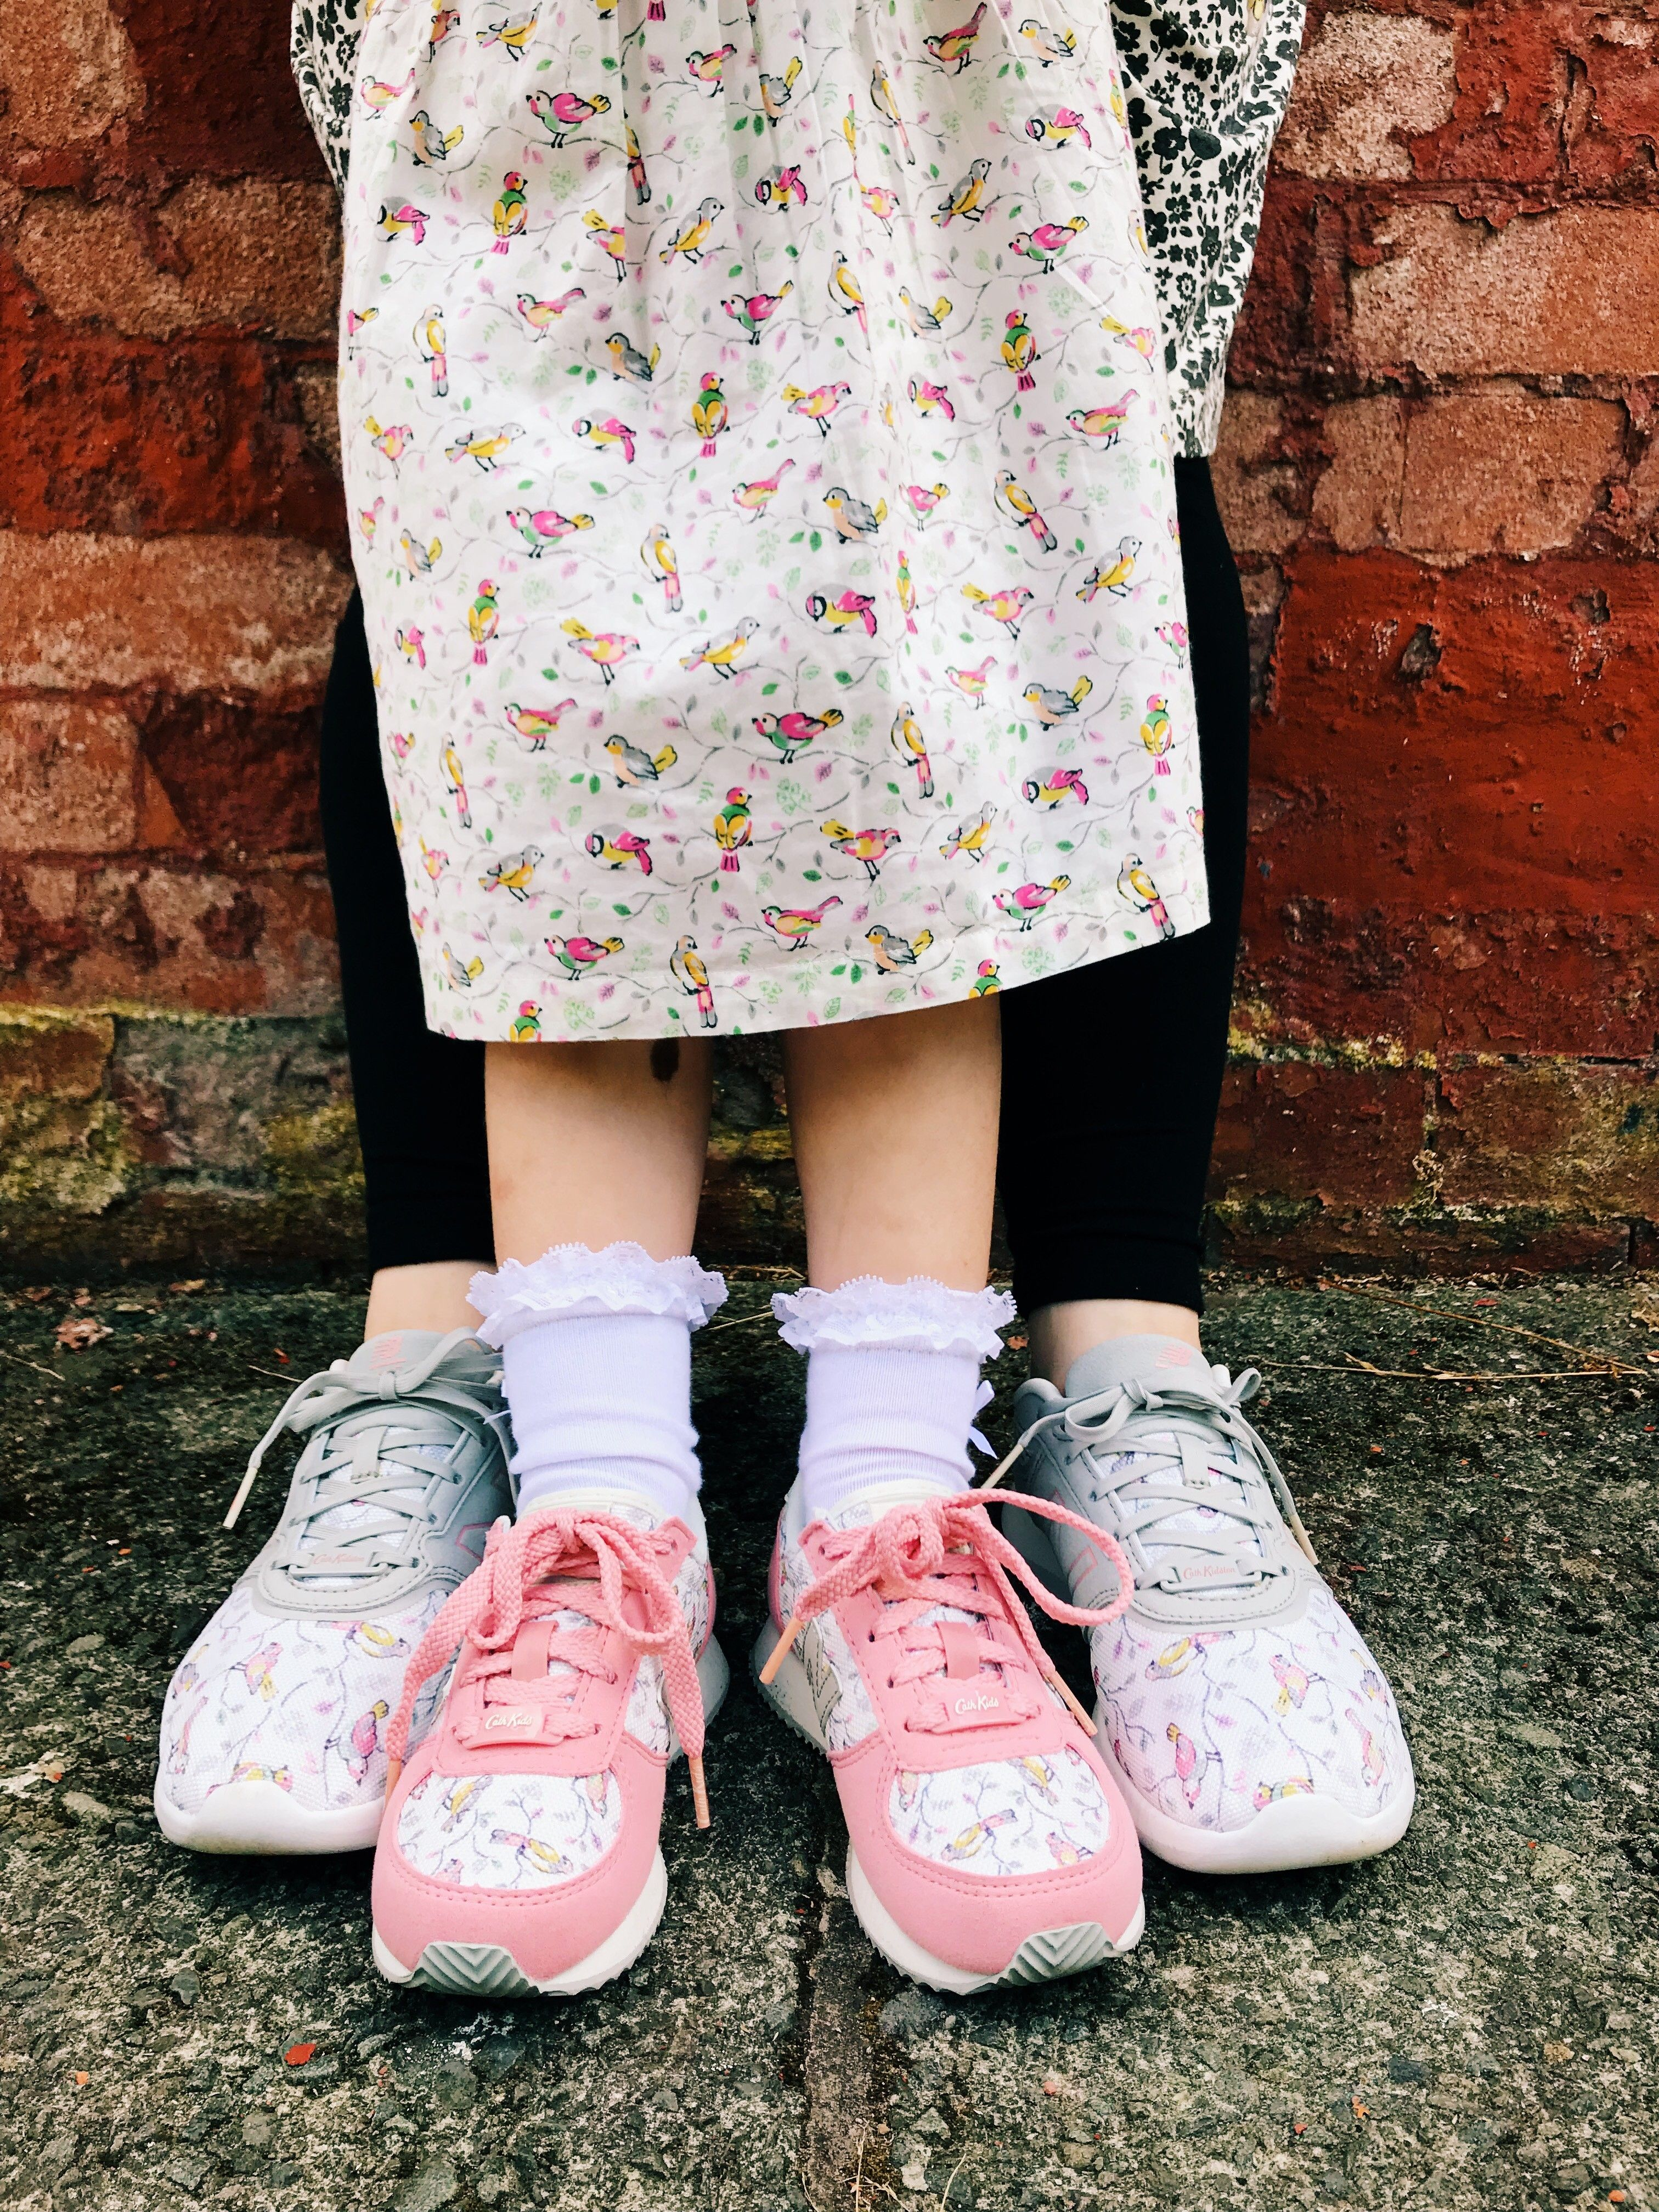 396a952bc5a307 We ve taken a New Balance iconic 415 style and blended it with our delicate  classic Cath Kidston print Little Birds